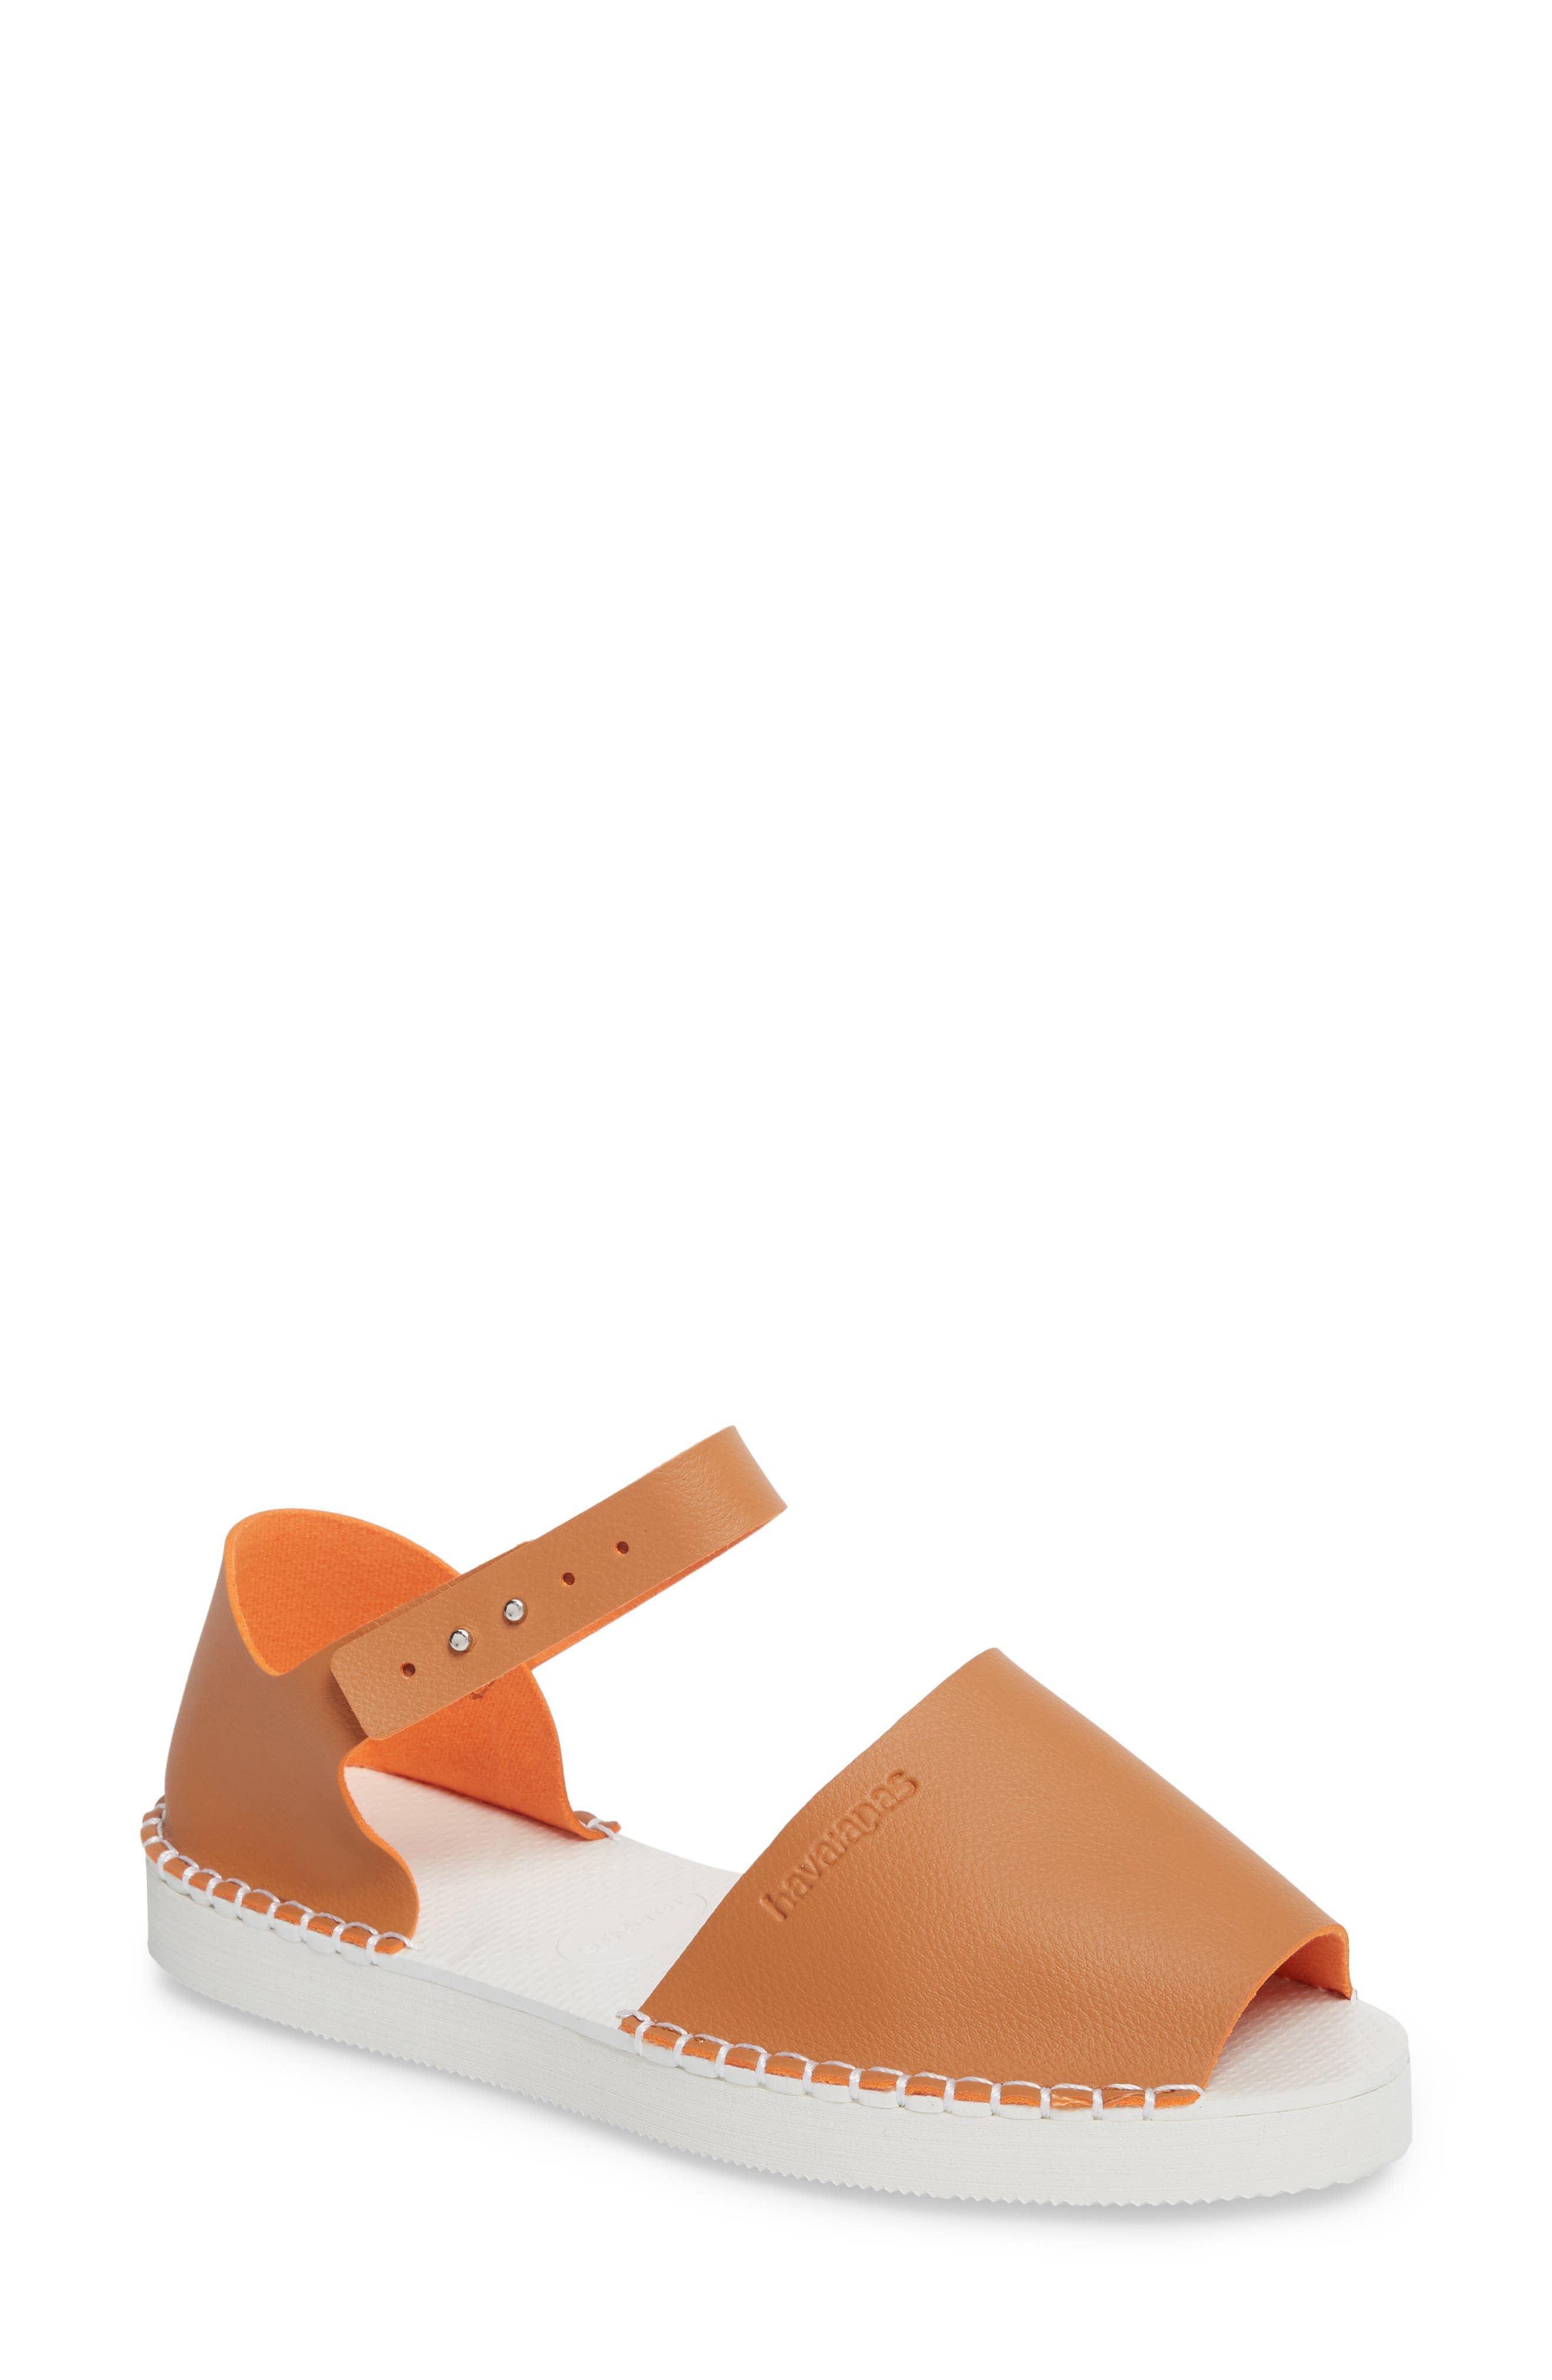 Flatform Fashion Sandal,                             Main thumbnail 1, color,                             CAMEL